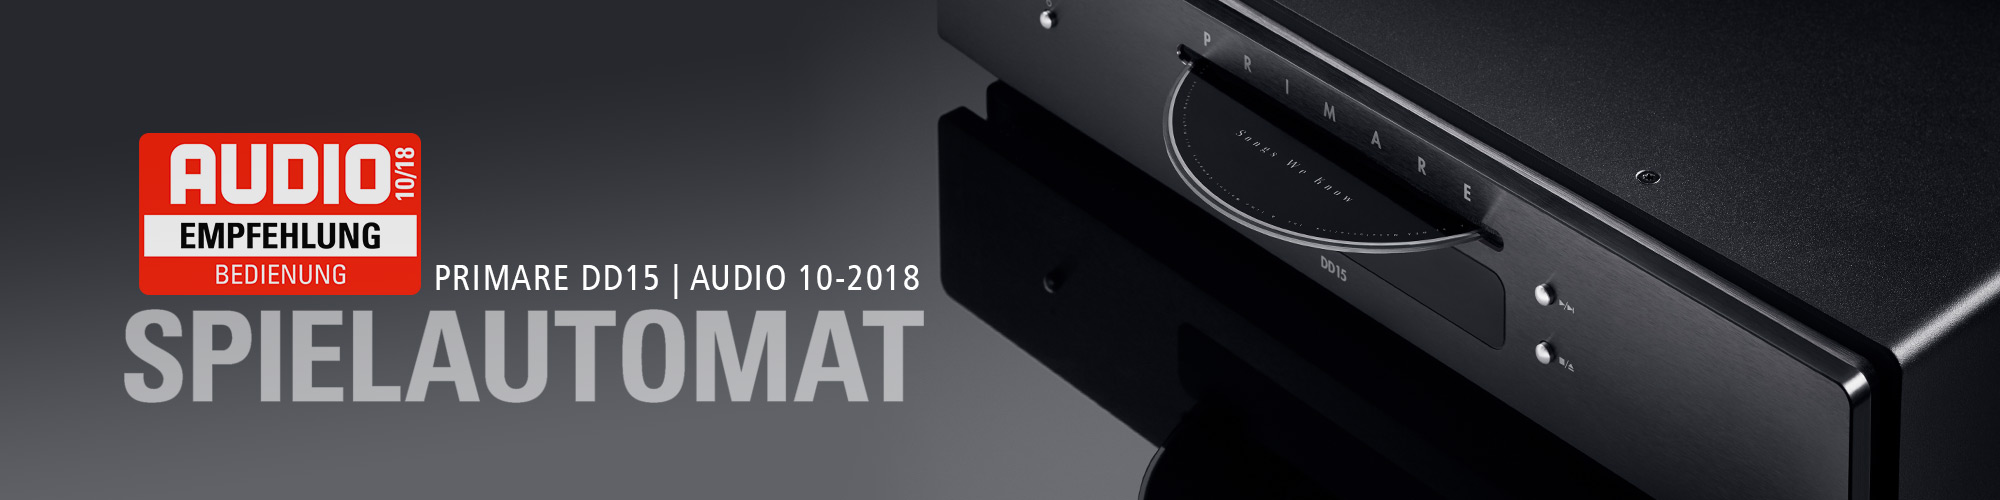 Primare DD15 | AUDIO 10-2018